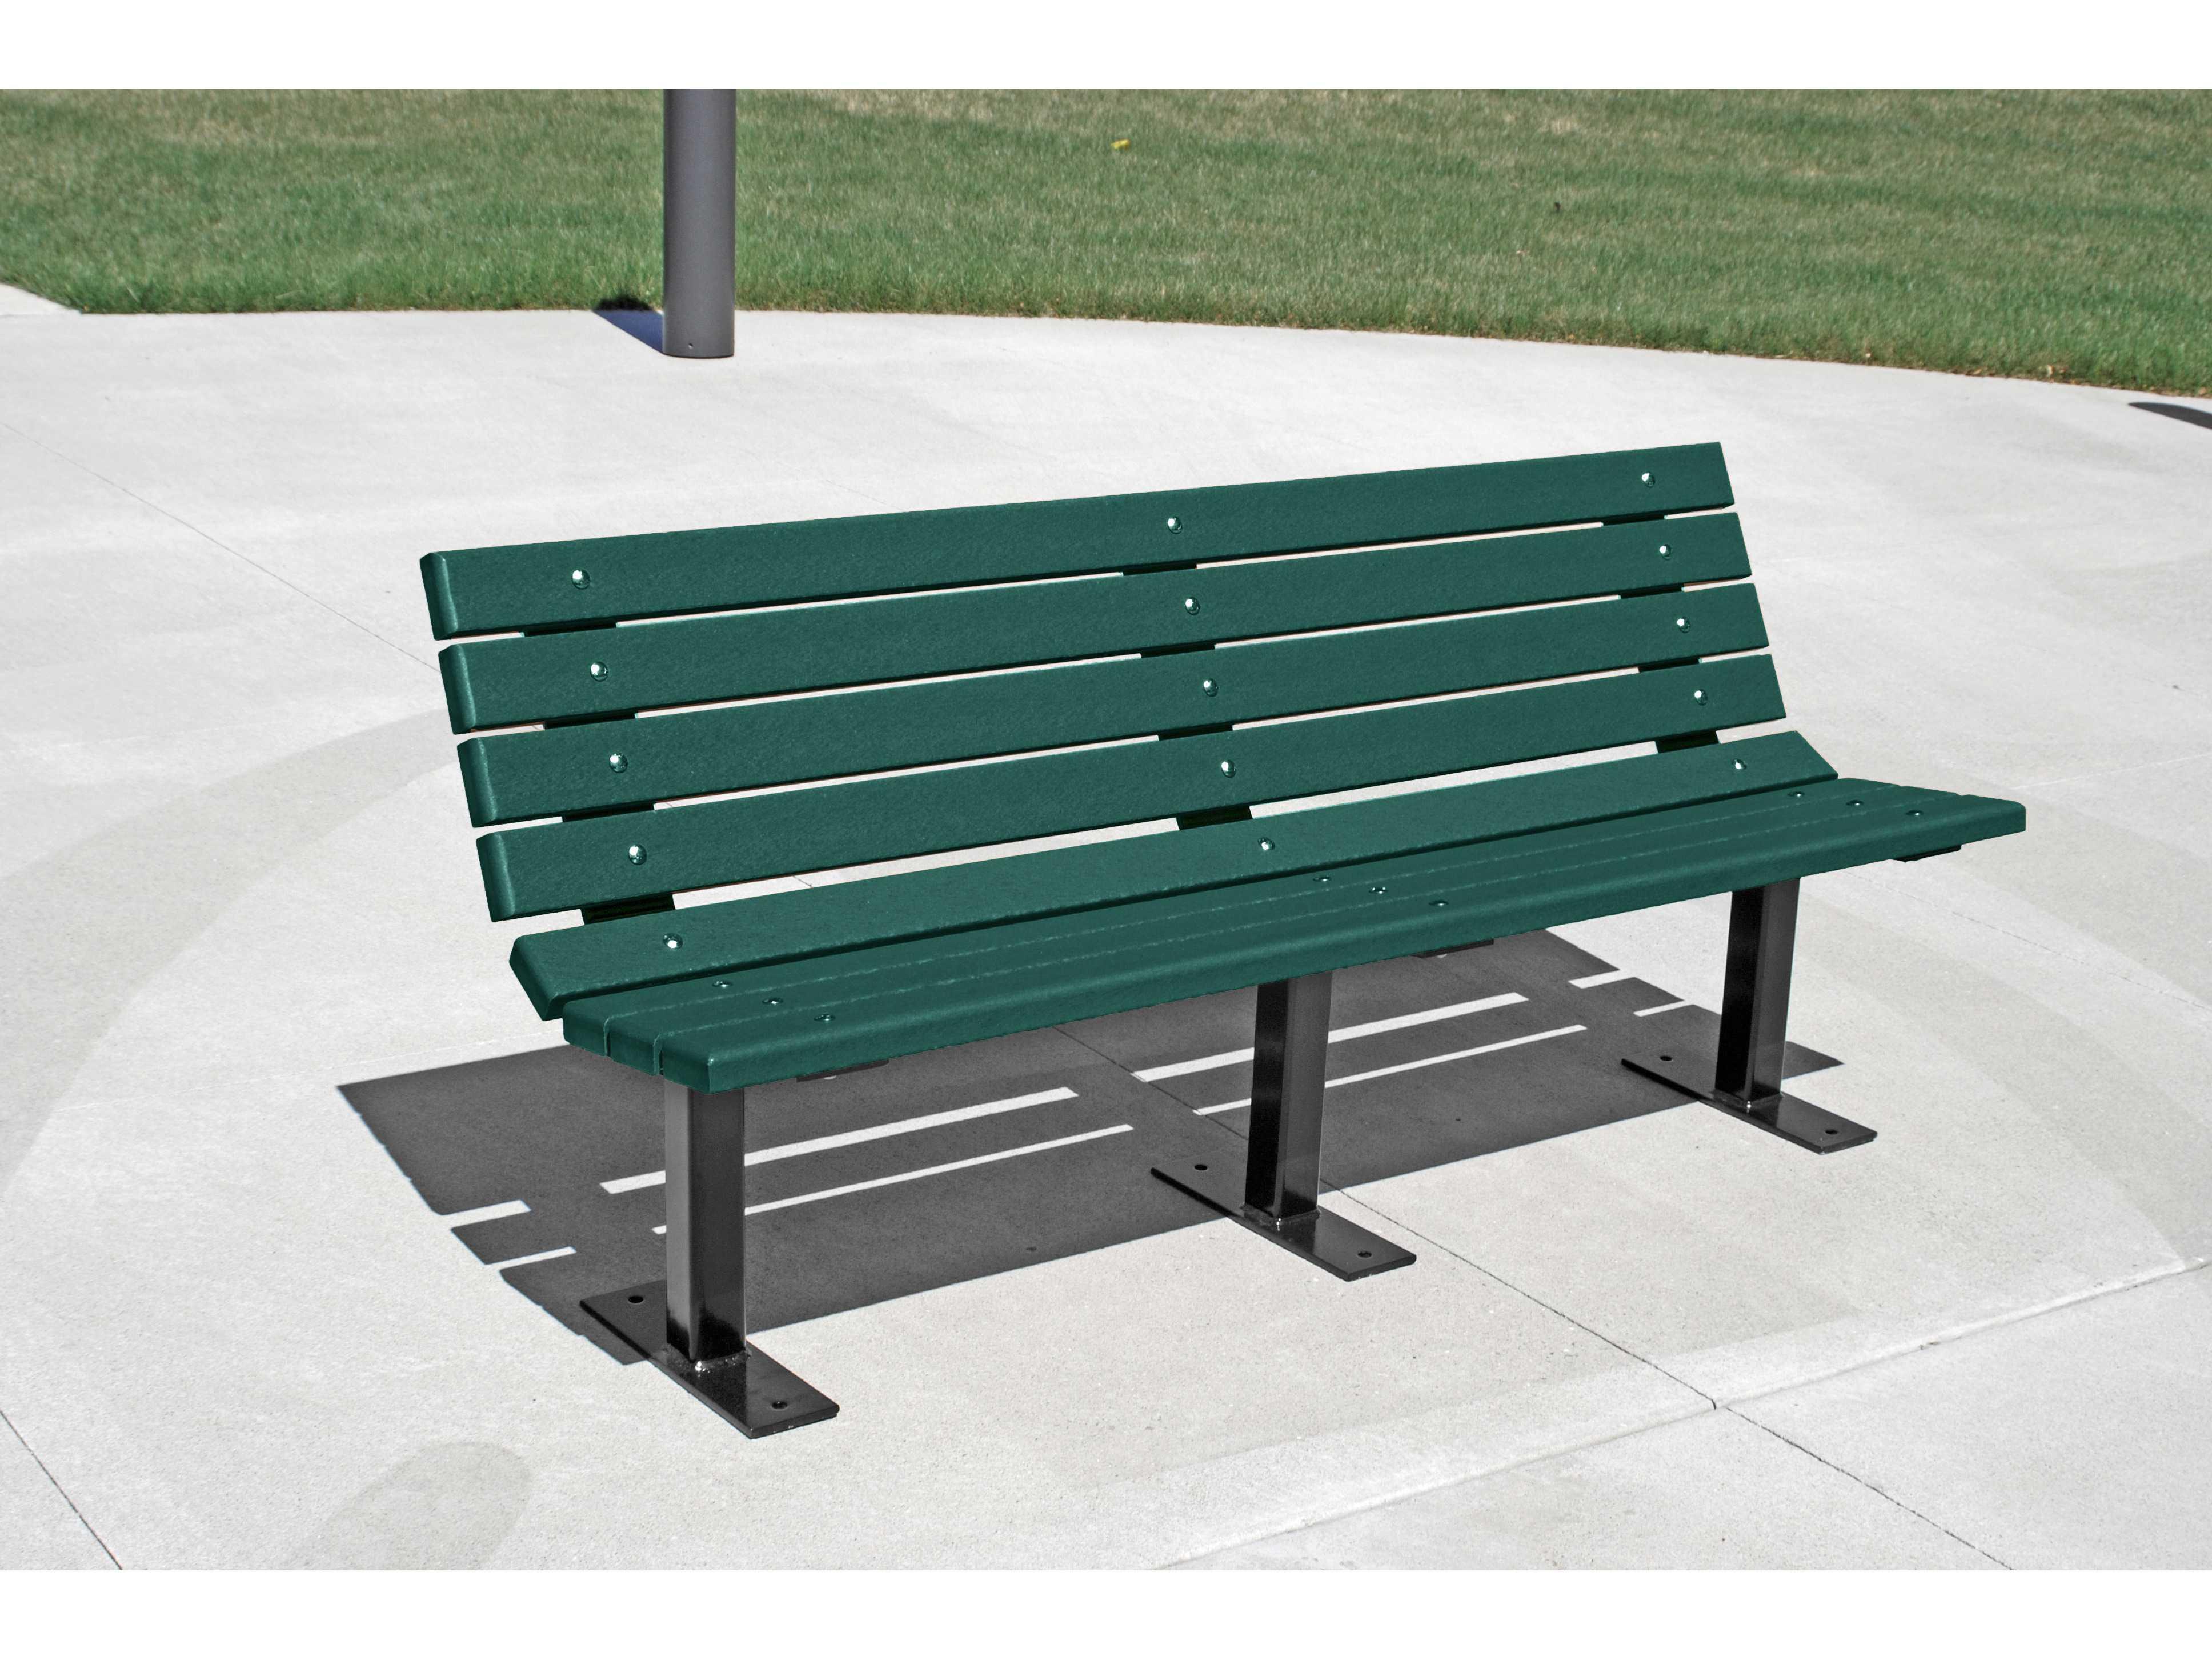 Frog Furnishings Contour Steel Recycled Plastic Bench Pbbfcon